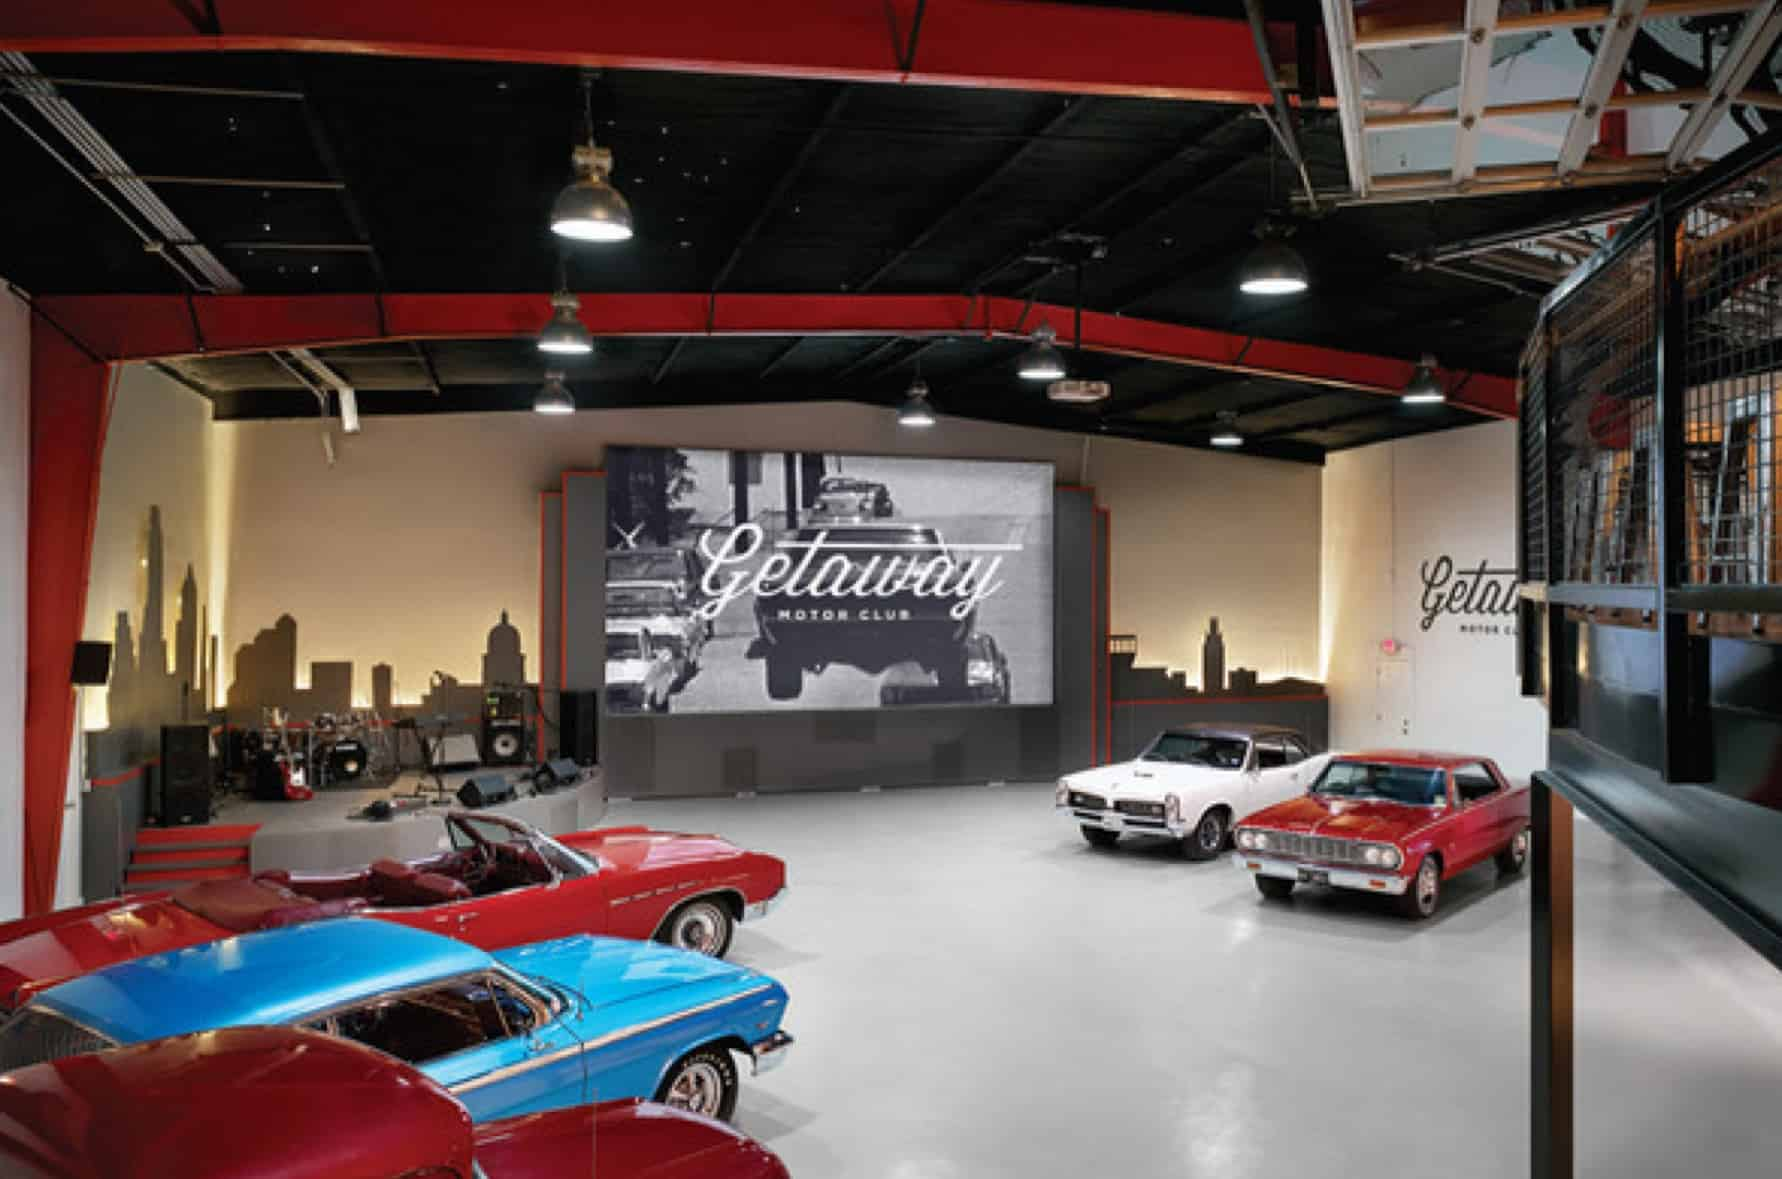 Vntage car museum event space